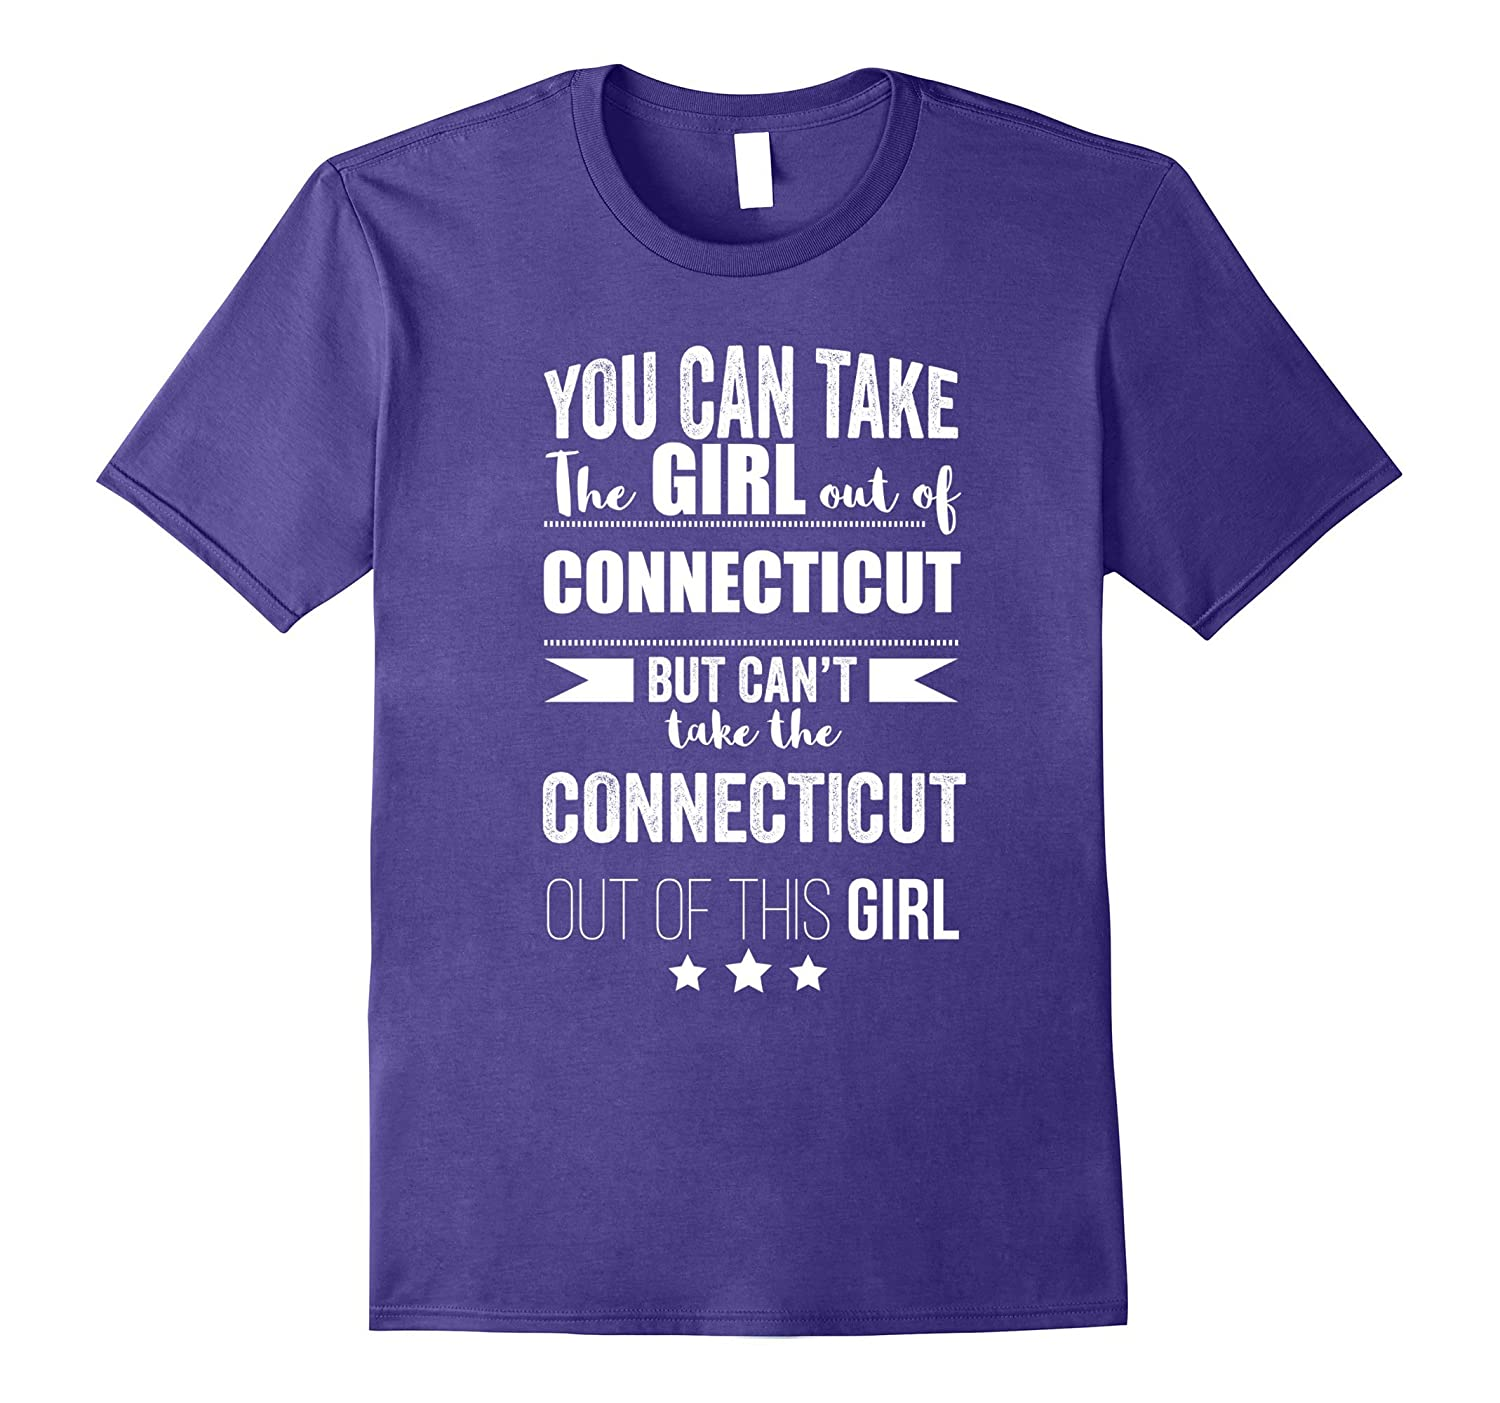 Can take the Girl out of Connecticut T-shirt Pride Proud-Vaci